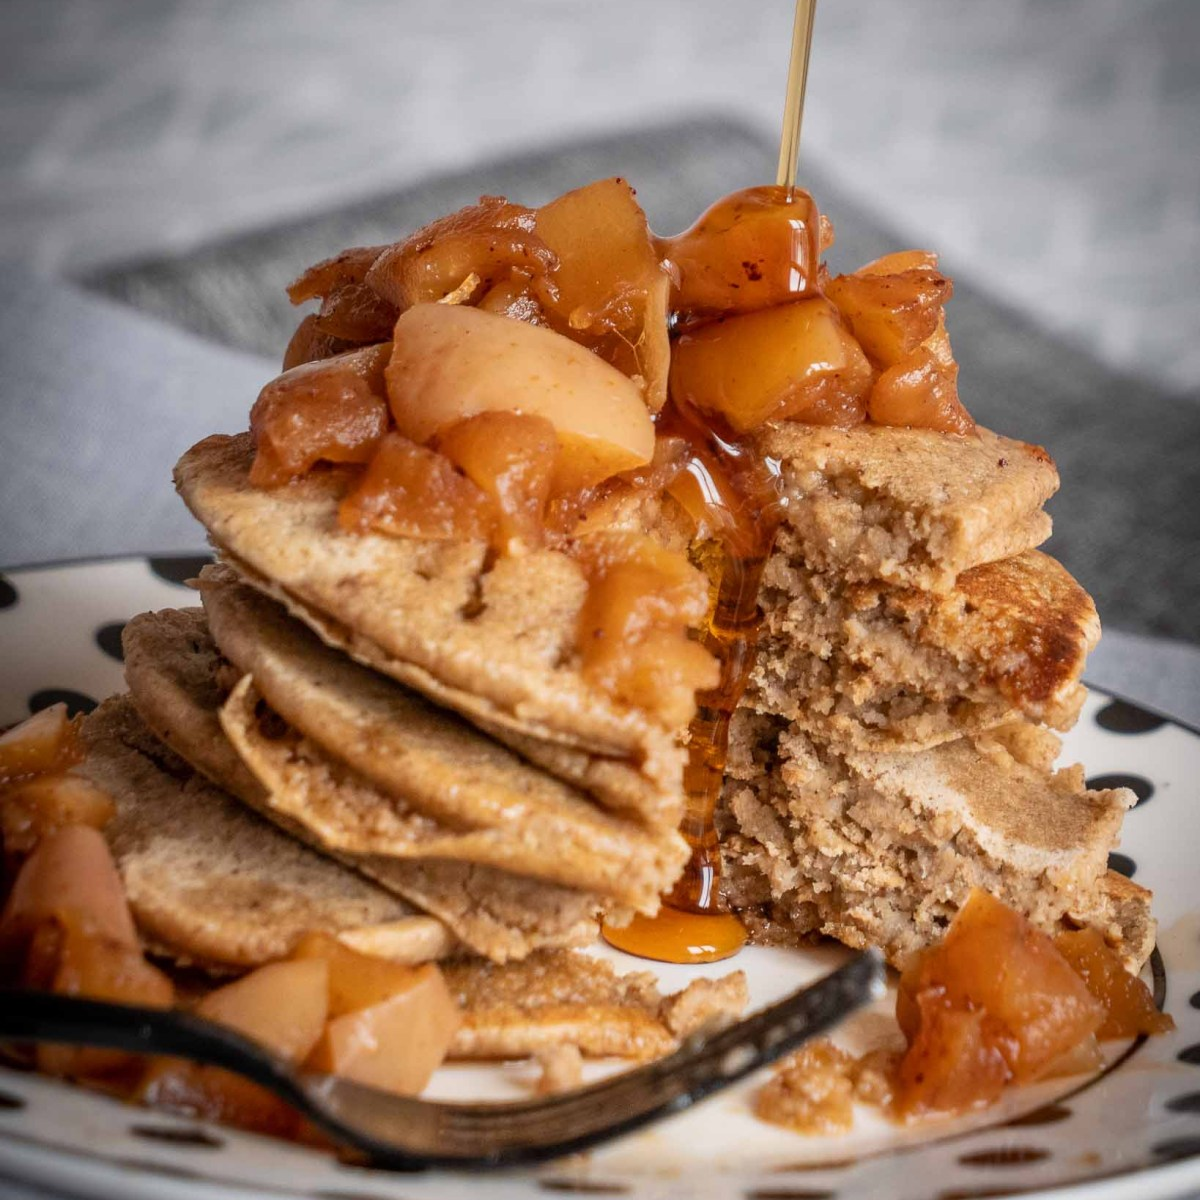 fluffy american style oat pancakes in large stack topped with caramel apples and being drizzled with syrup